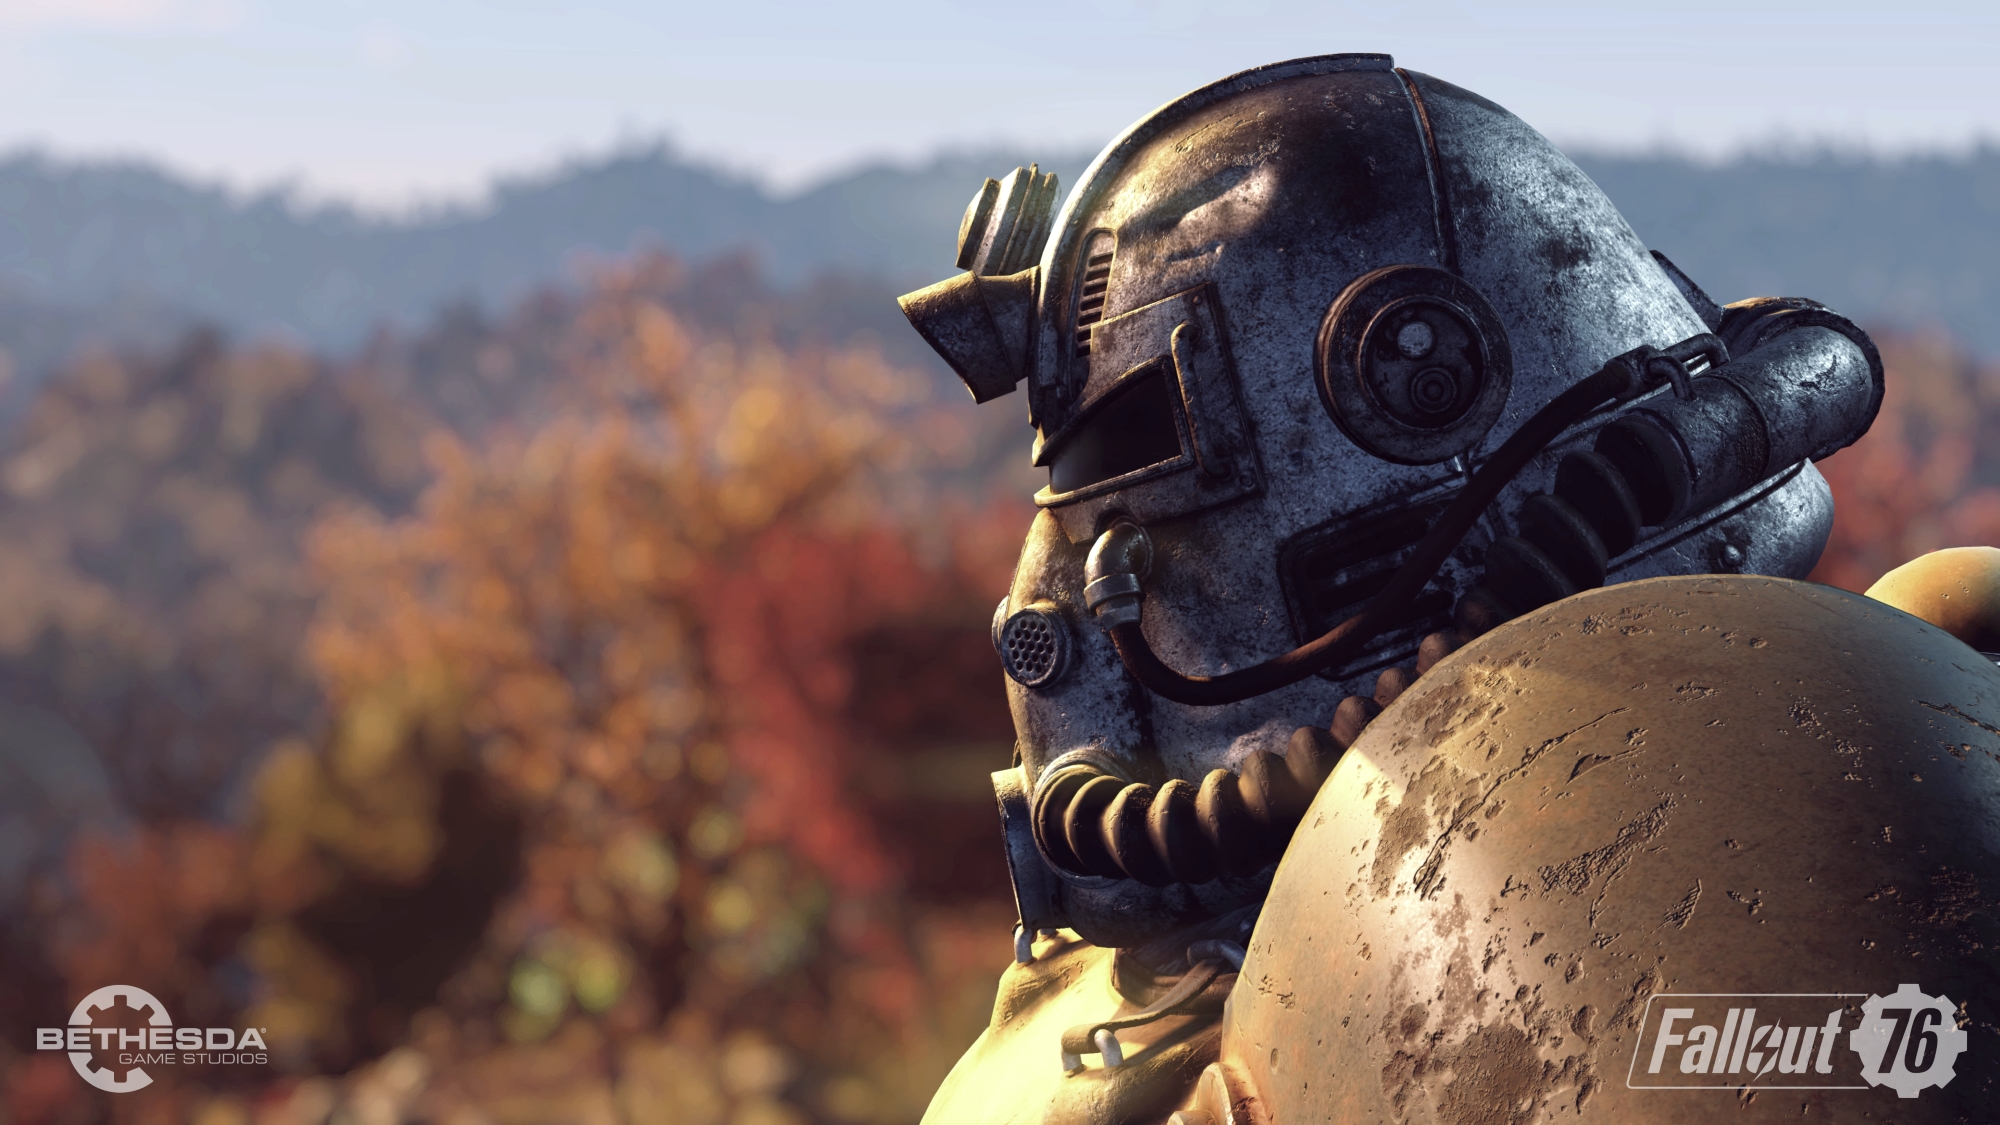 When is the Fallout 76 release date and how to pre-order?